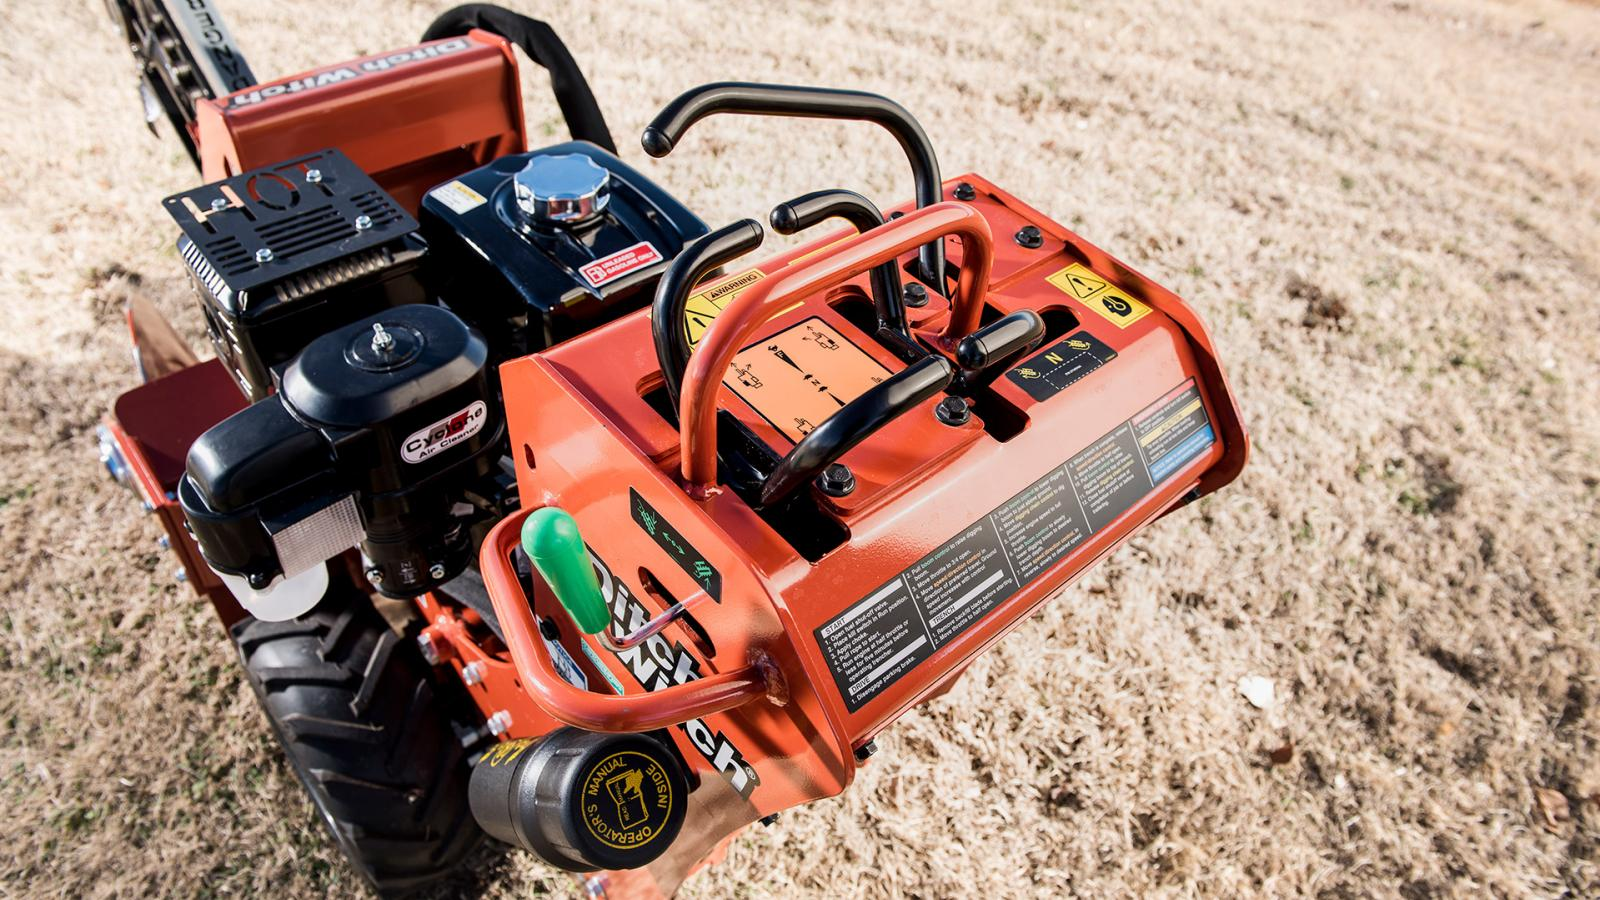 Ditch Witch C12 Walk-Behind Trencher